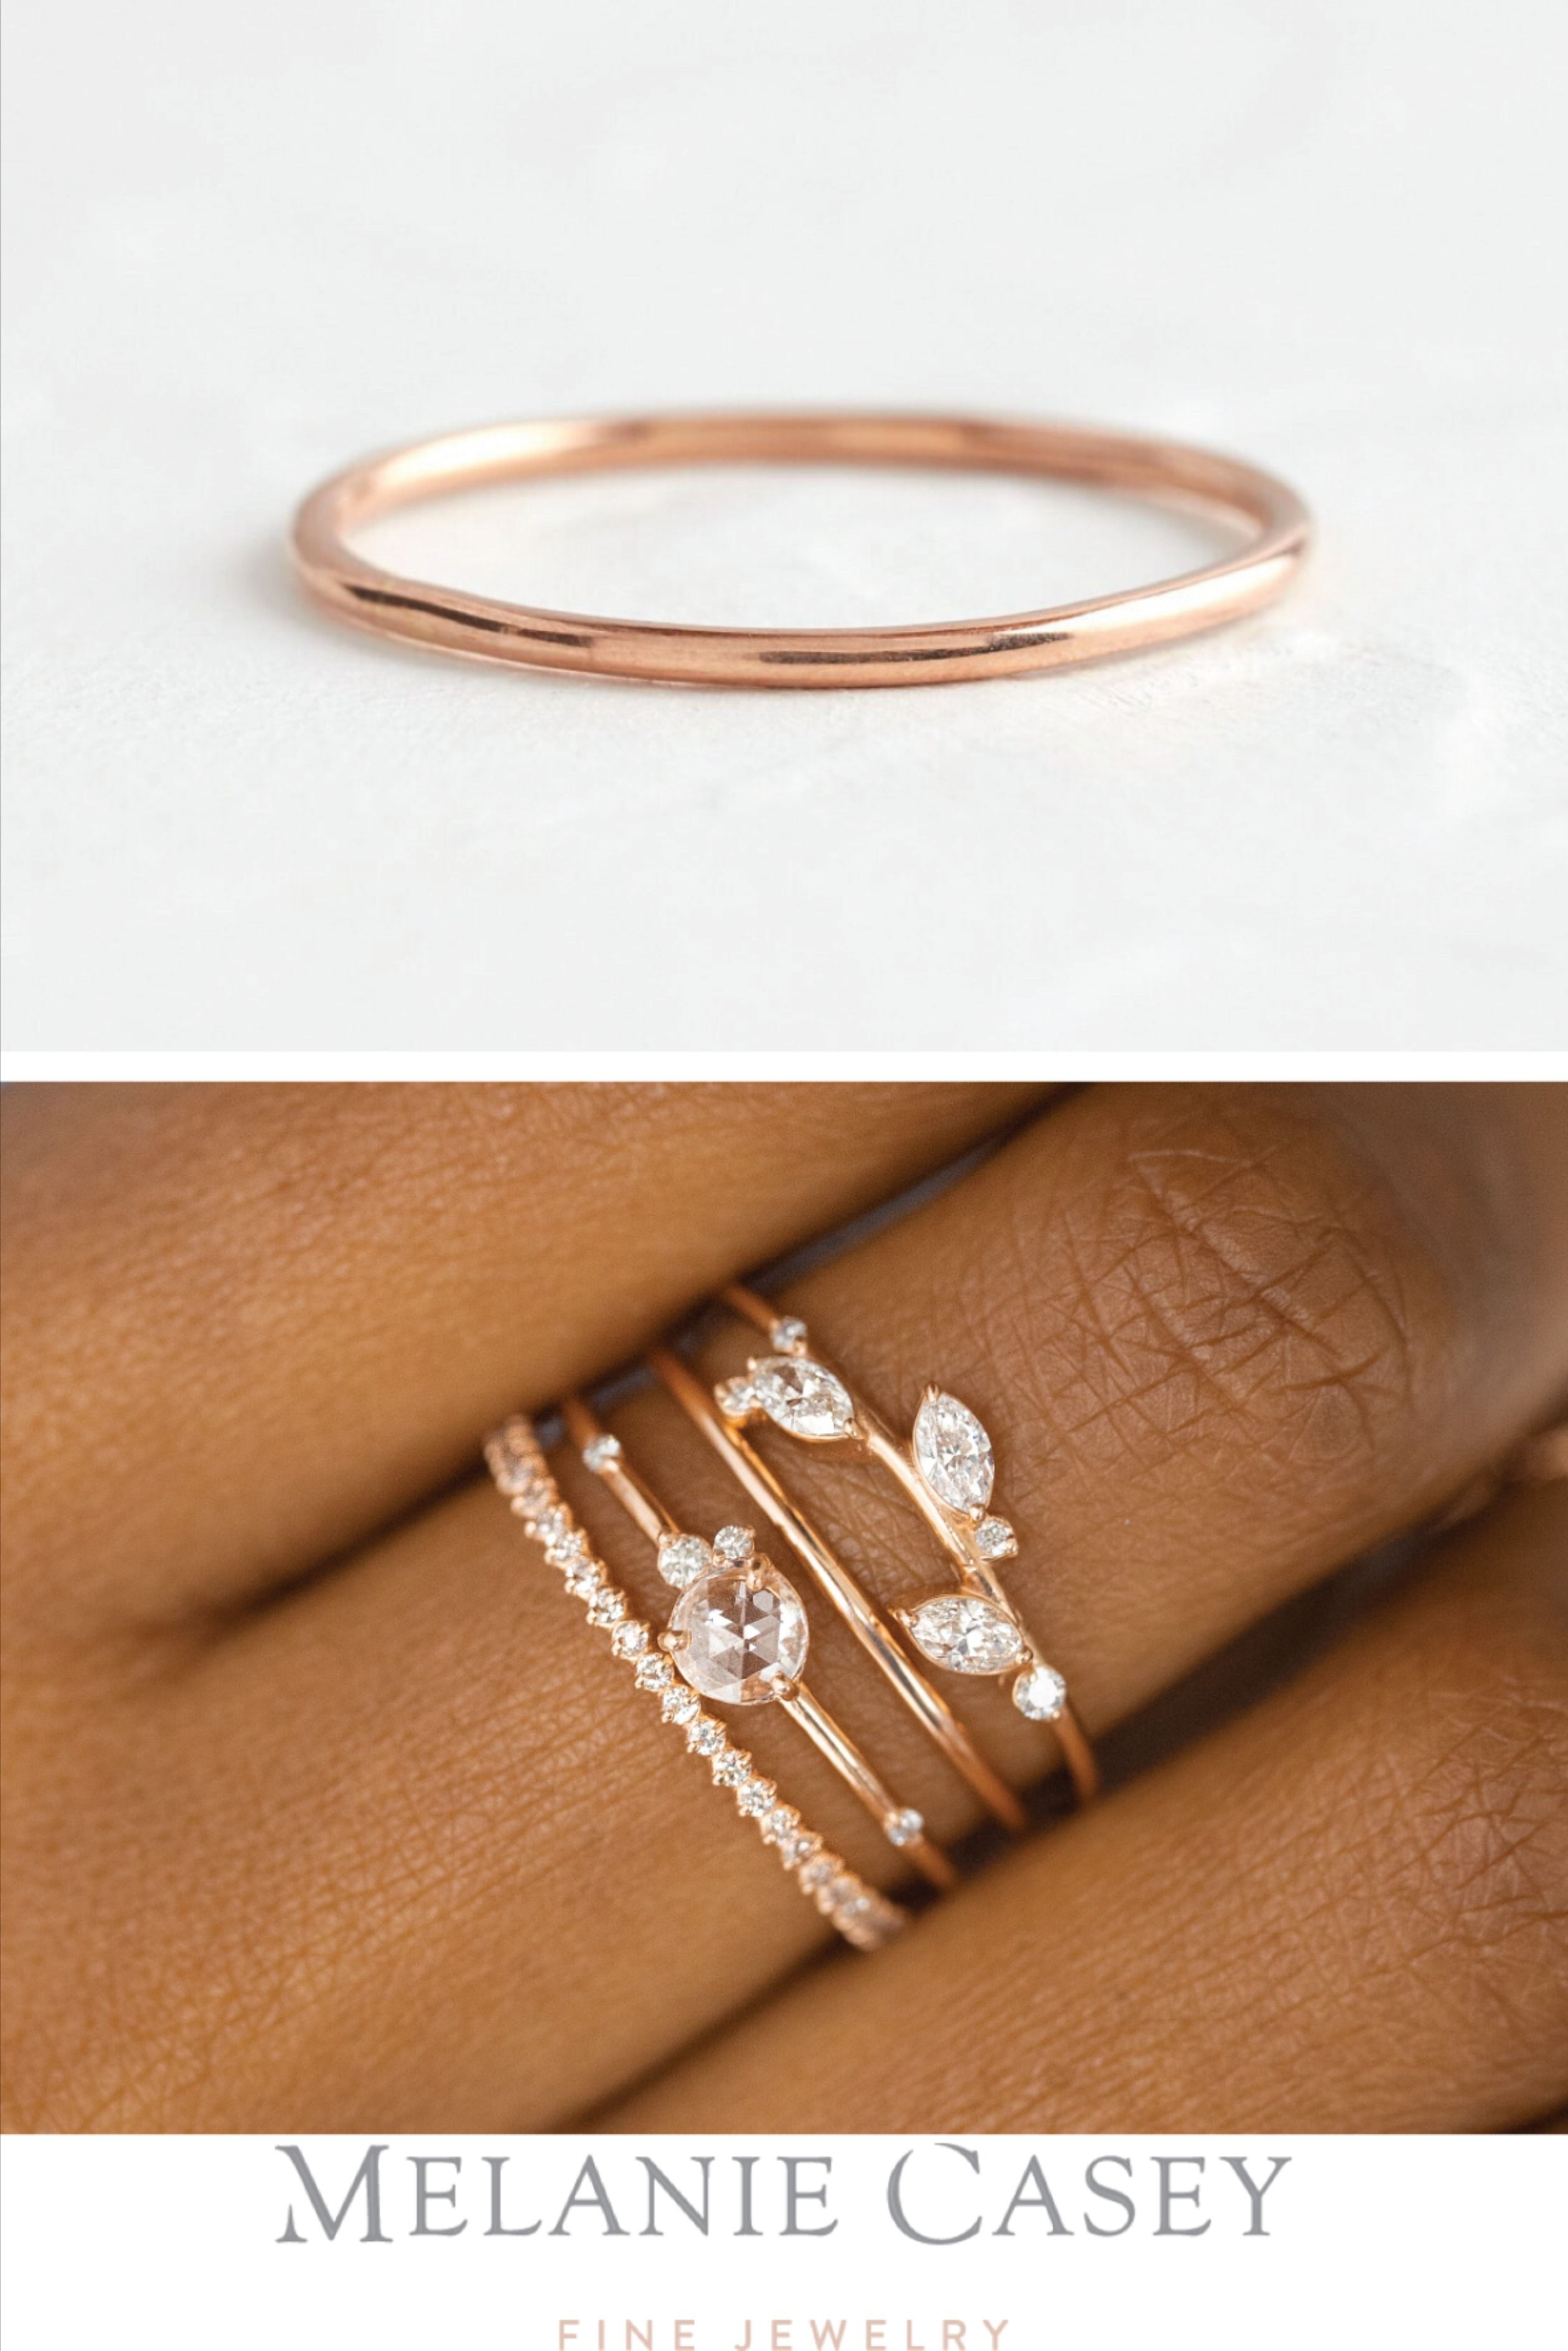 Pairing Band With Images Stacked Wedding Bands White Gold Diamond Wedding Rings Simple Wedding Bands